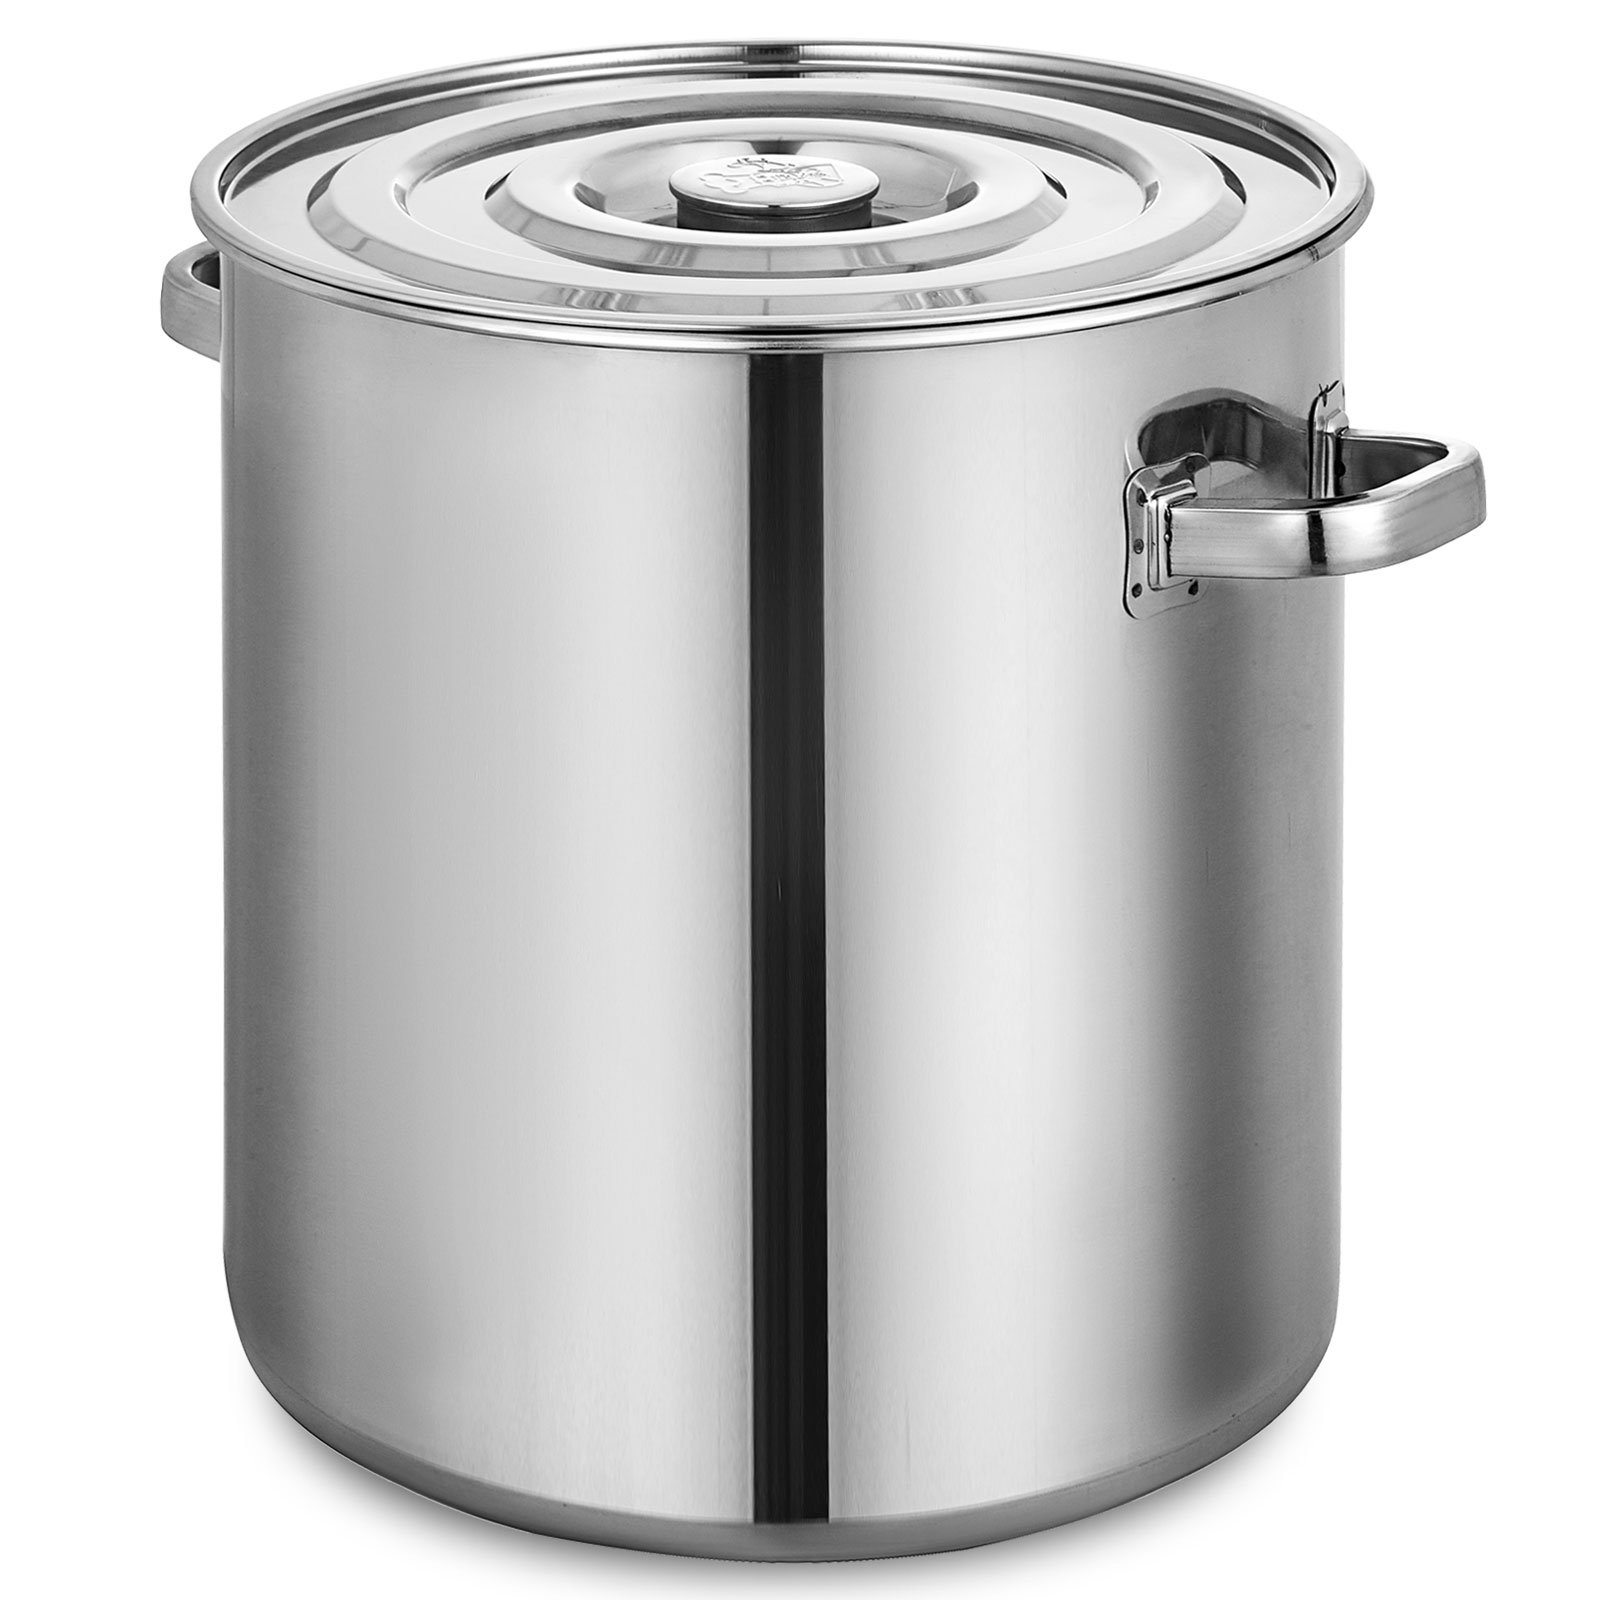 Mophorn Brew kettle Stockpot with Lid 52 Quart Stainless Steel Bot Brewing 13.1 gallon Home Brewing for Beer Brewing, Maple Syrup, Stainless Steel Stock Pot Cookware